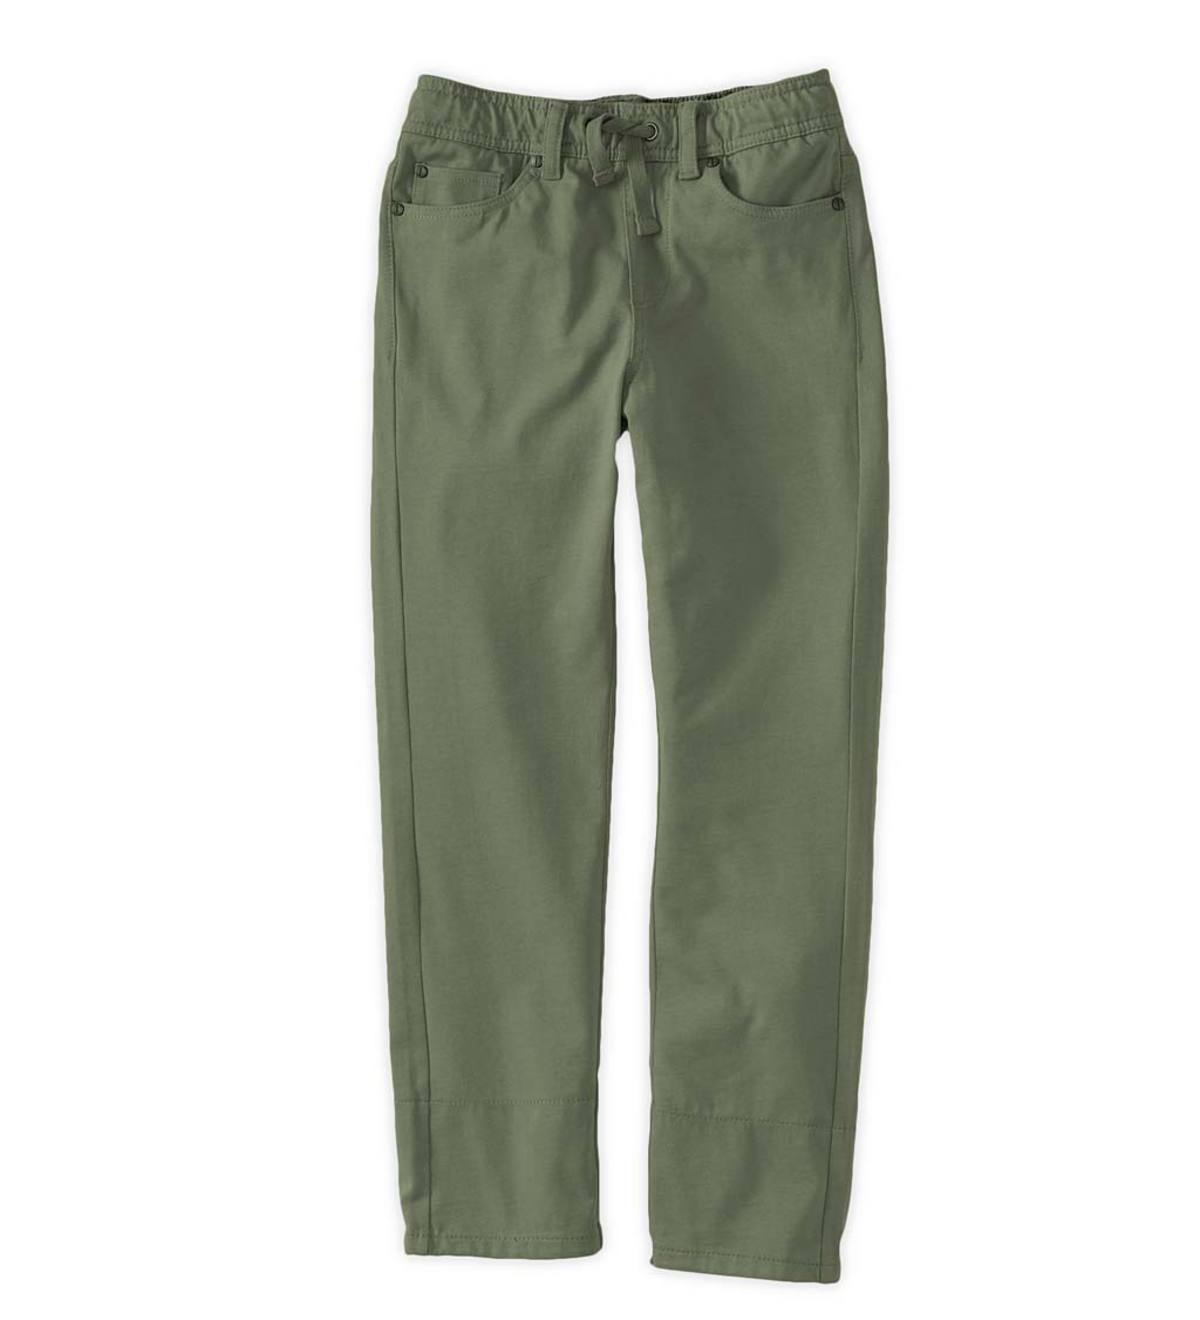 Pull-On Pants - Army Green - 10